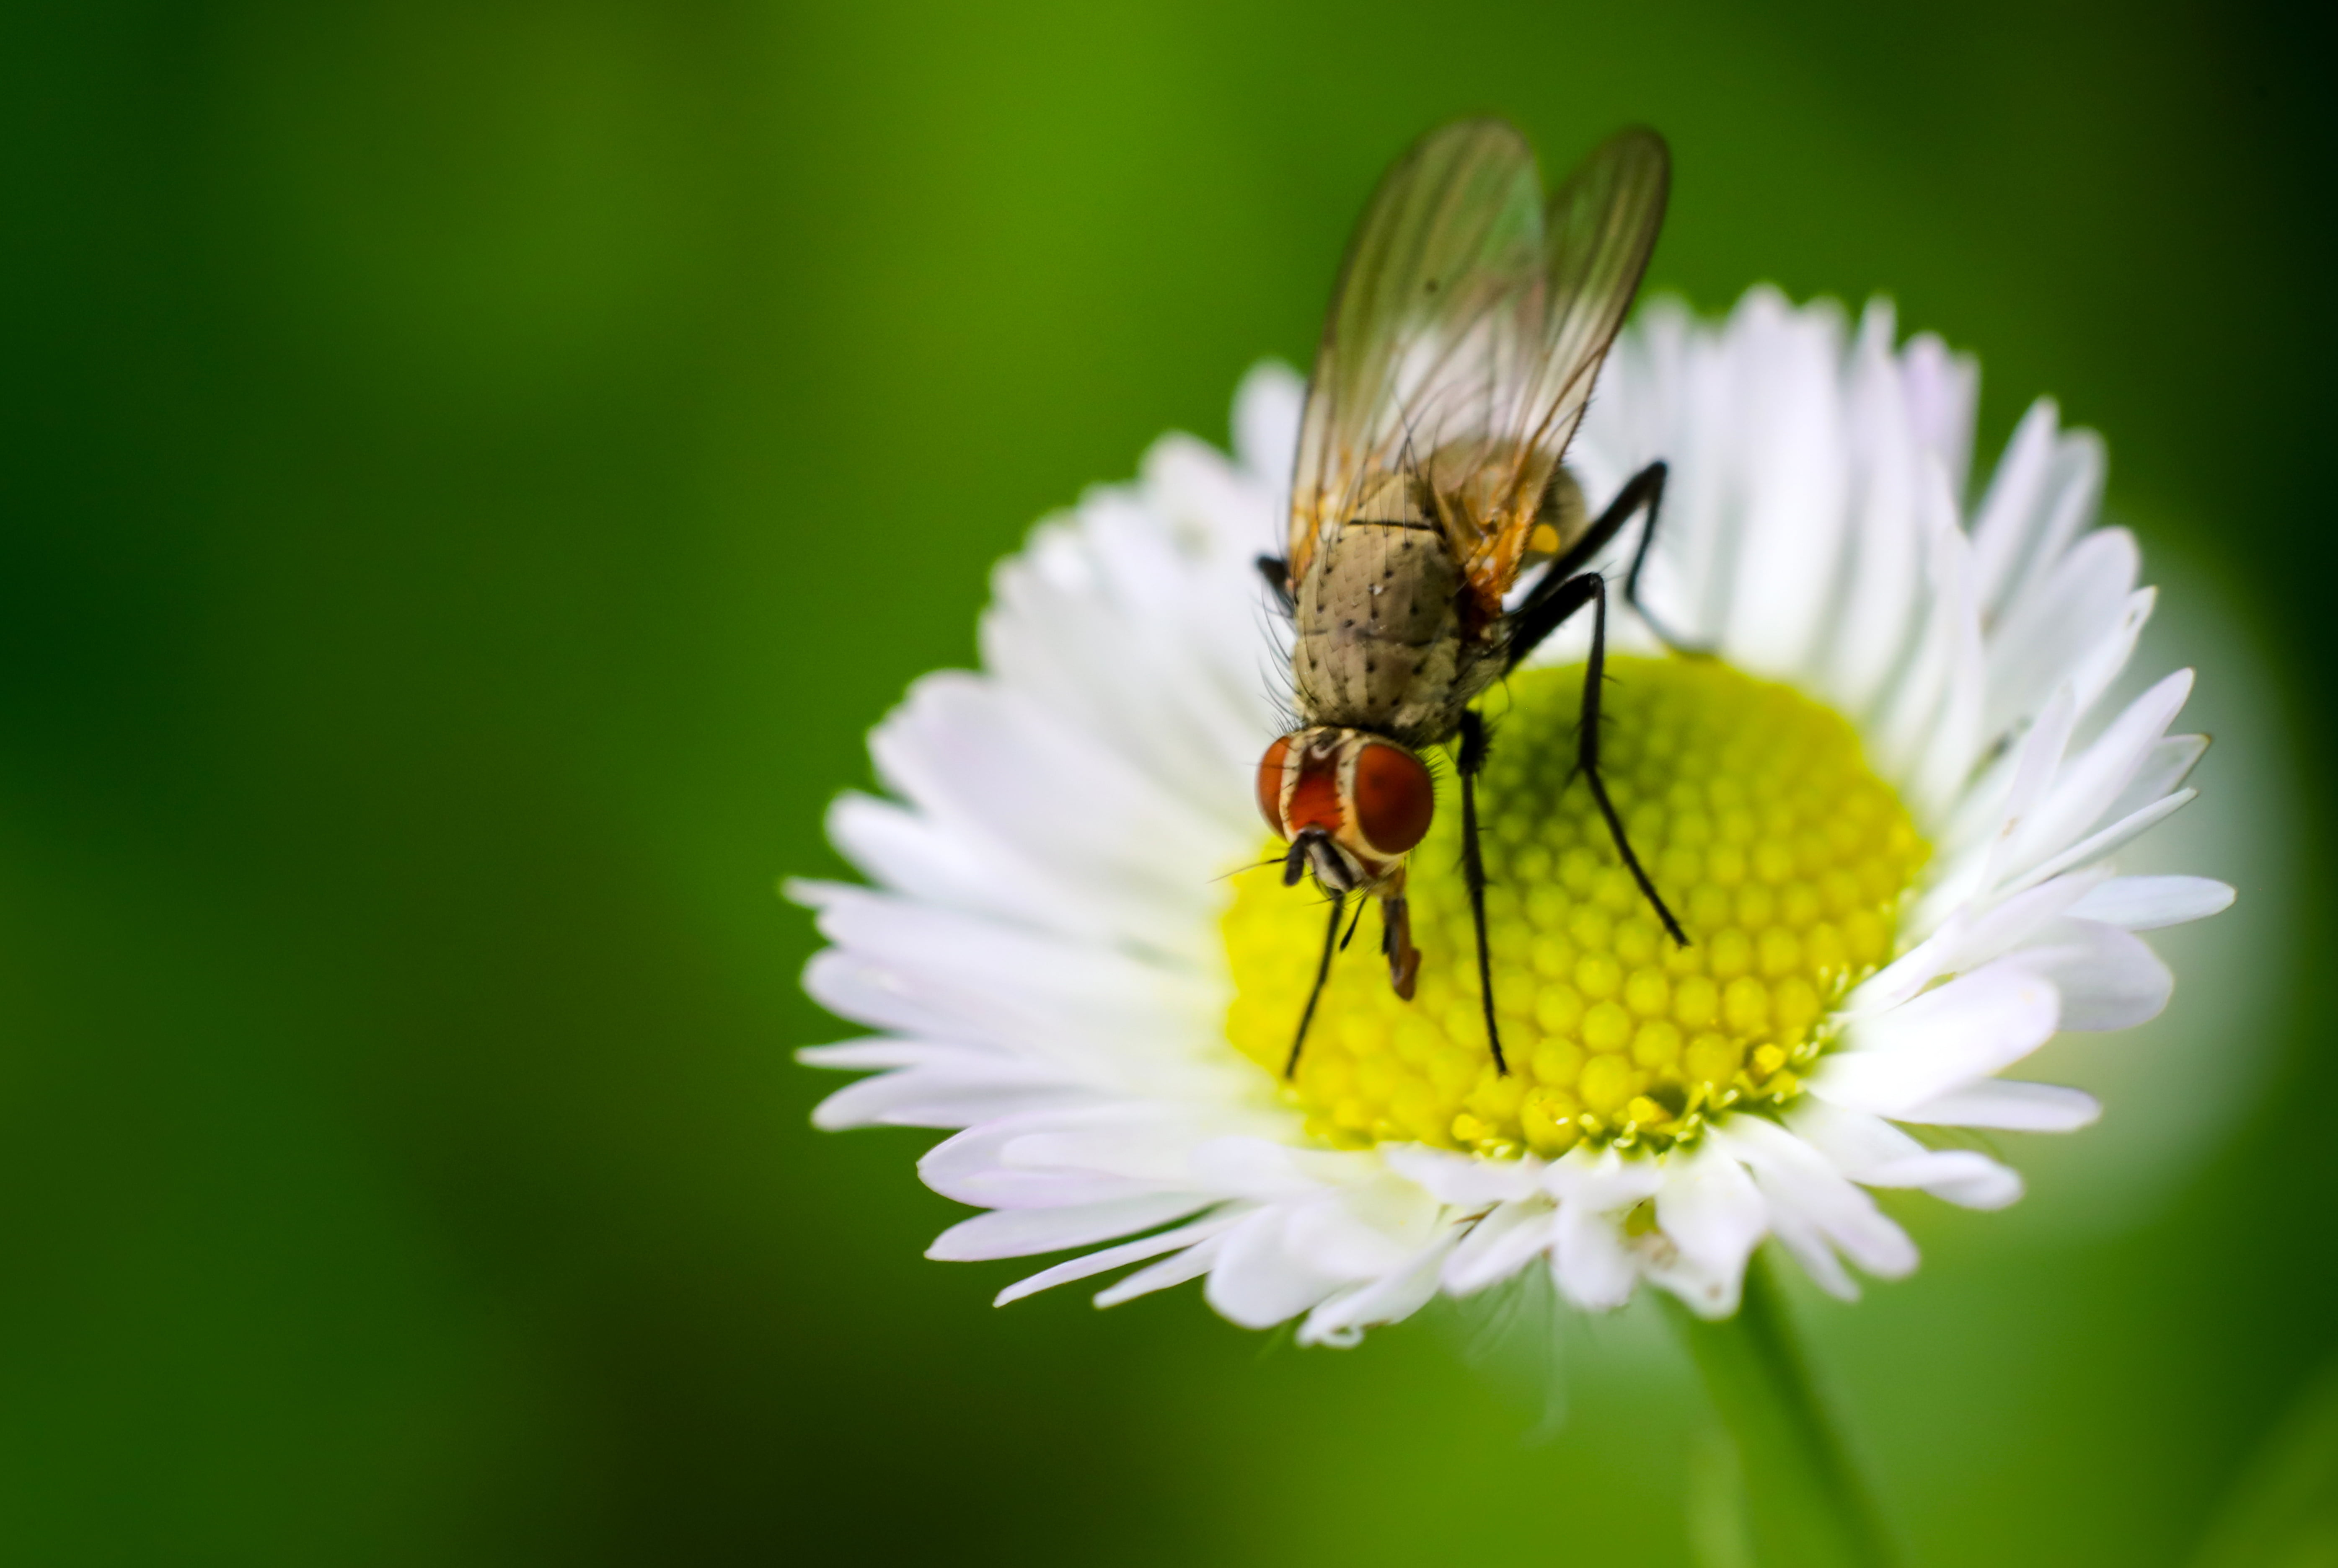 Common Housefly on a white